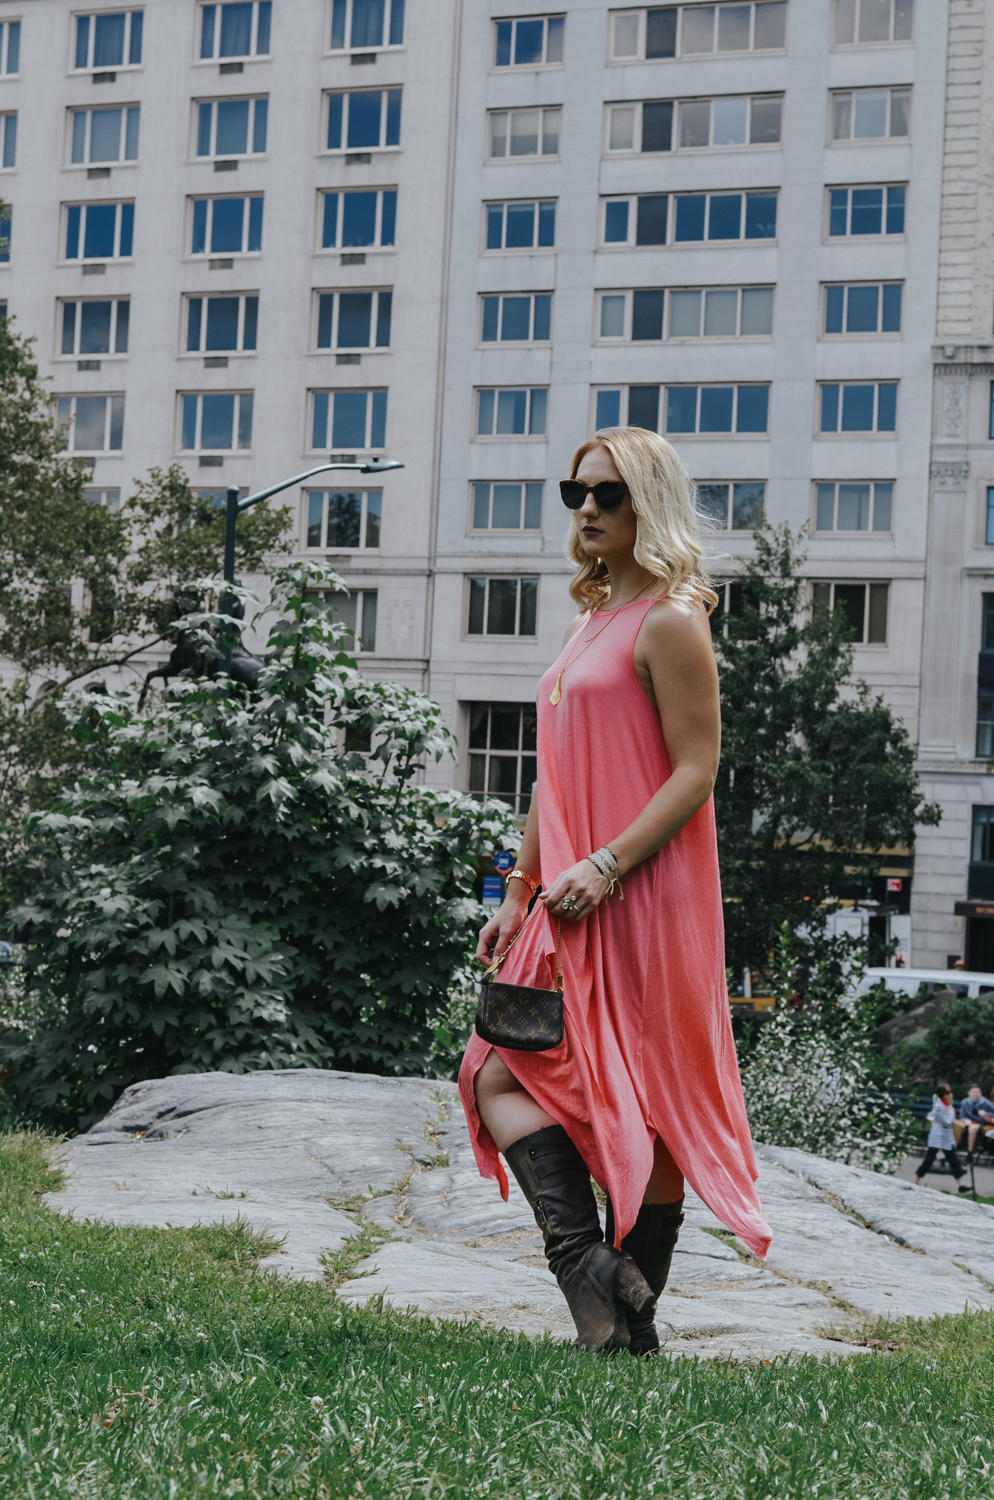 New York Fashion Week Look: Coral Maxi Dress and Knee High Boots - the perfect summer to fall transition look.